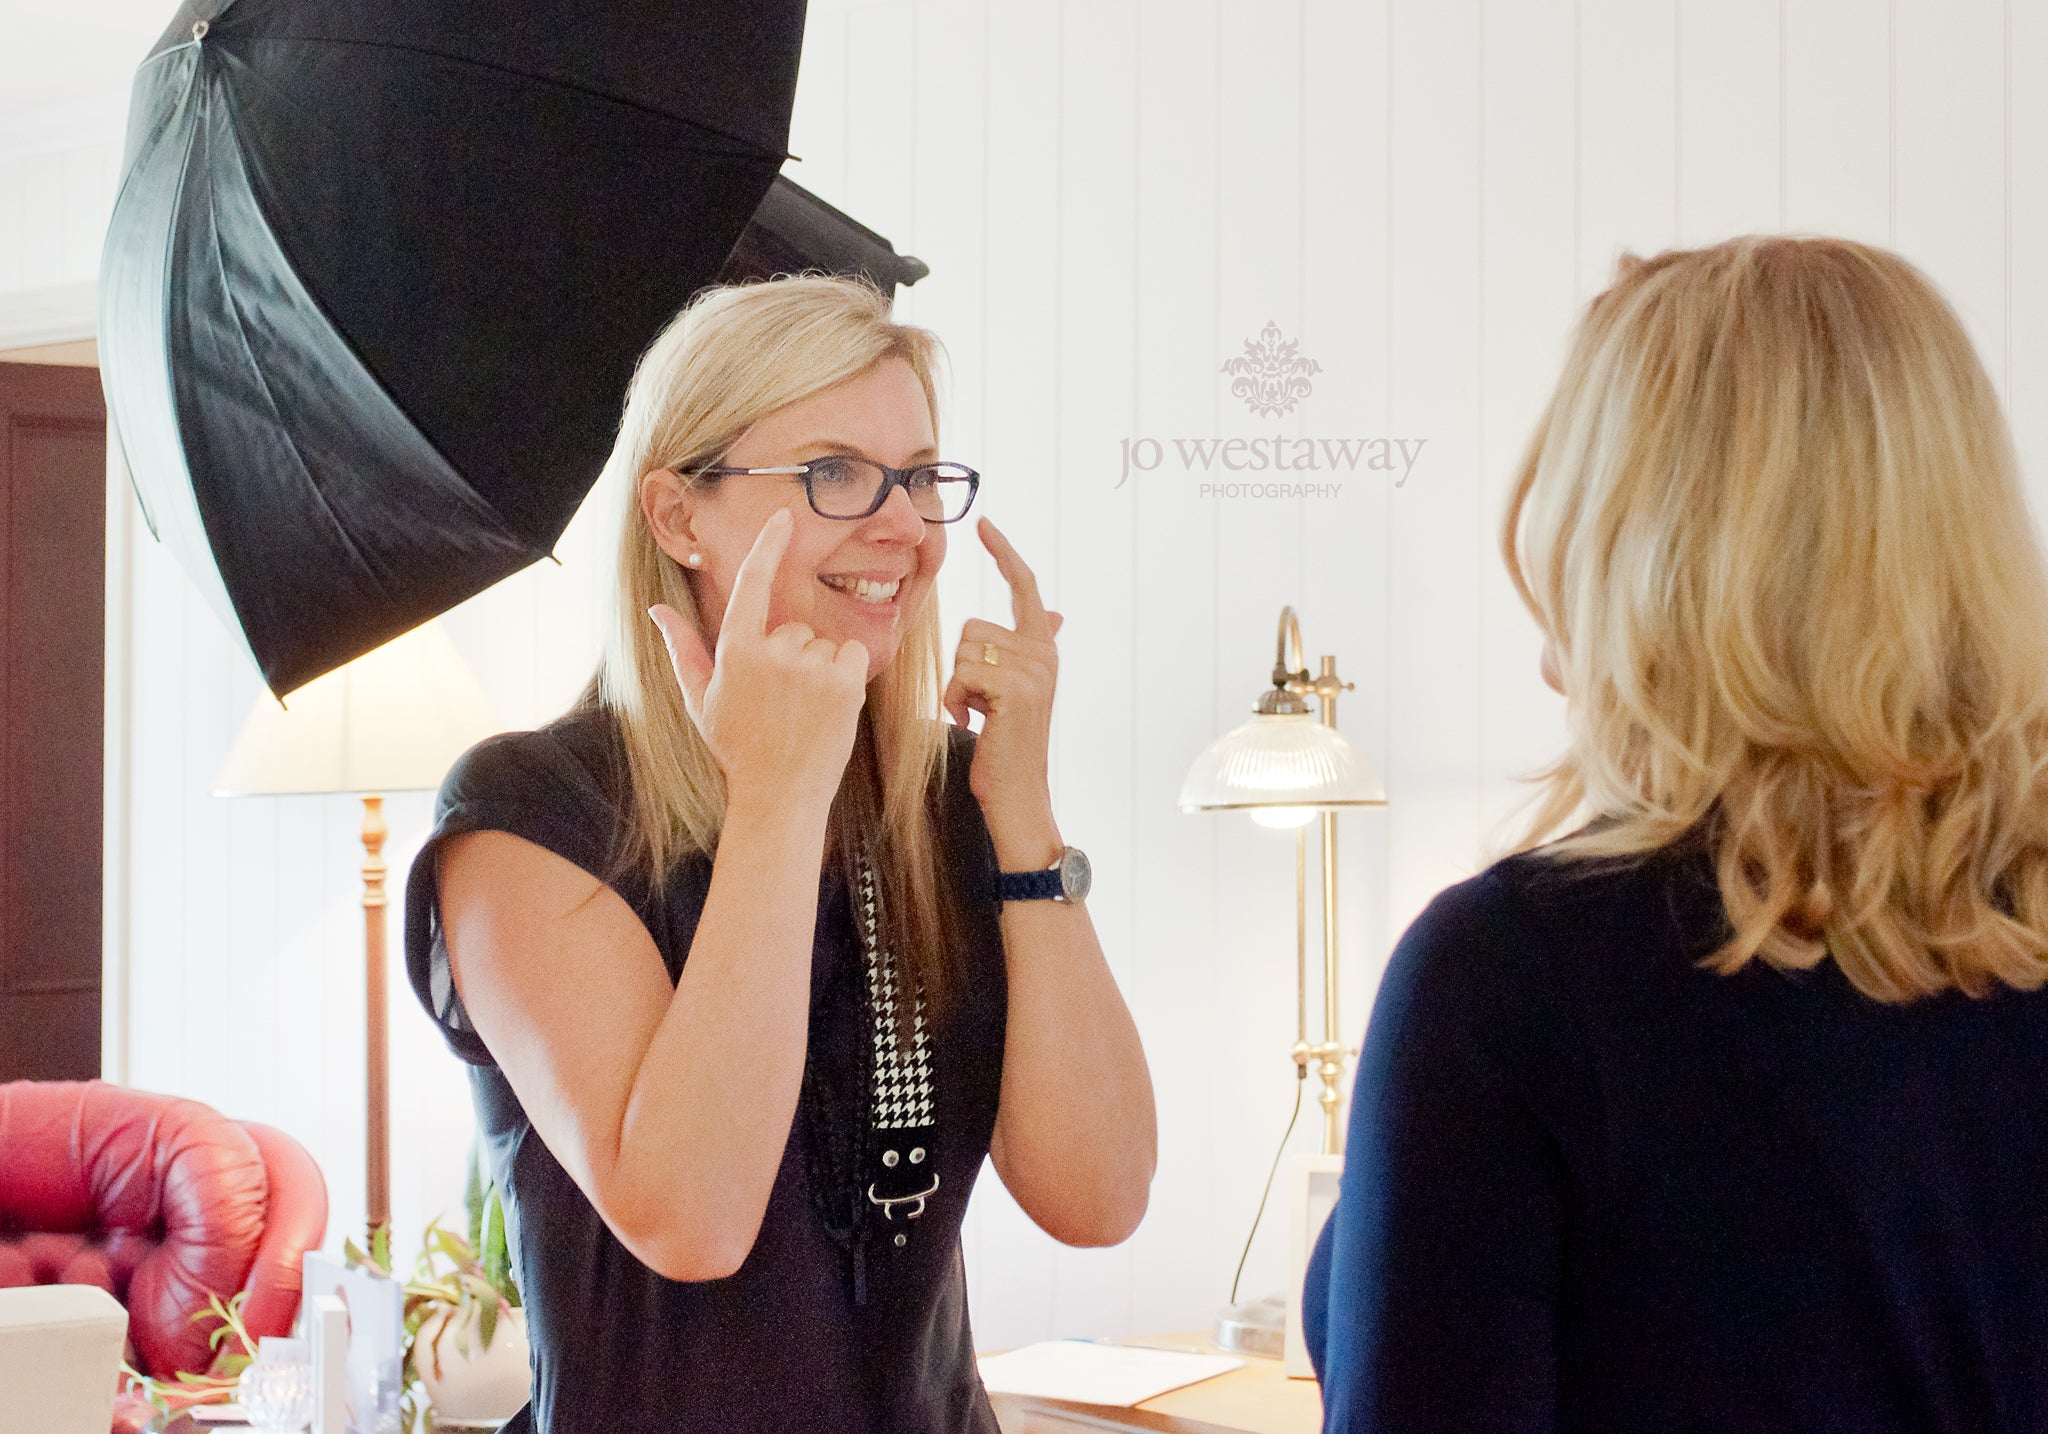 How to get a natural flattering smile in photos - professional brand photography shows her clients